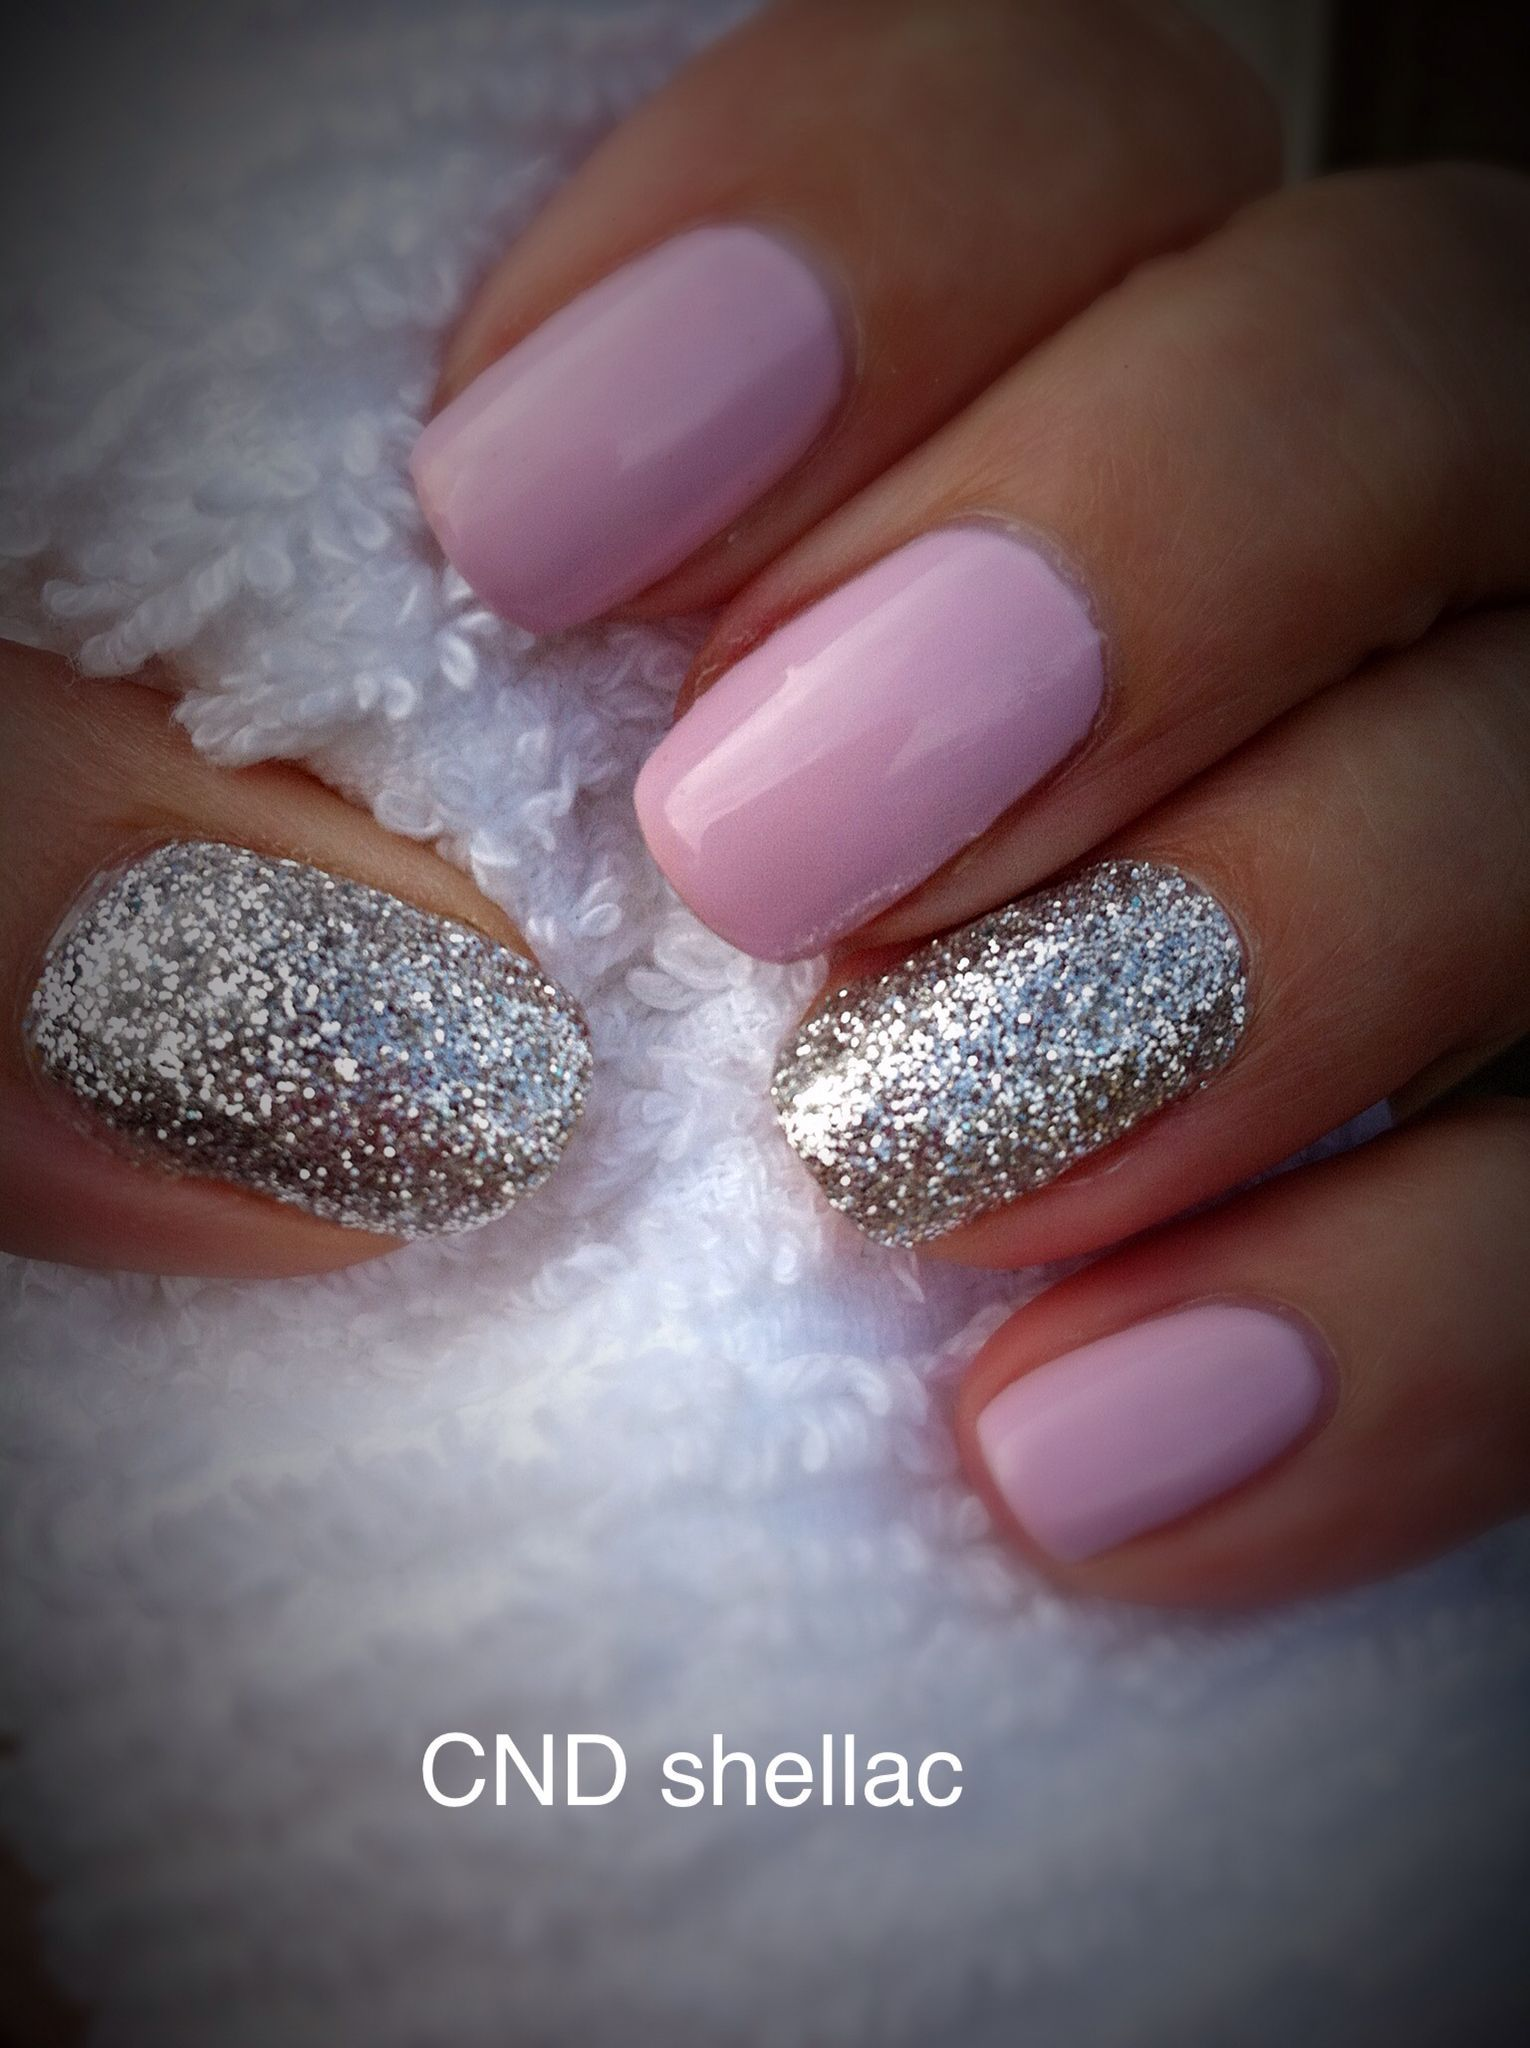 22 New Nail Designs For 11 Year Olds Cnd Shellac And Lecente Glitter On Accent Nails 22 New Nail Shellac Nail Art Shellac Nail Designs Glitter Accent Nails